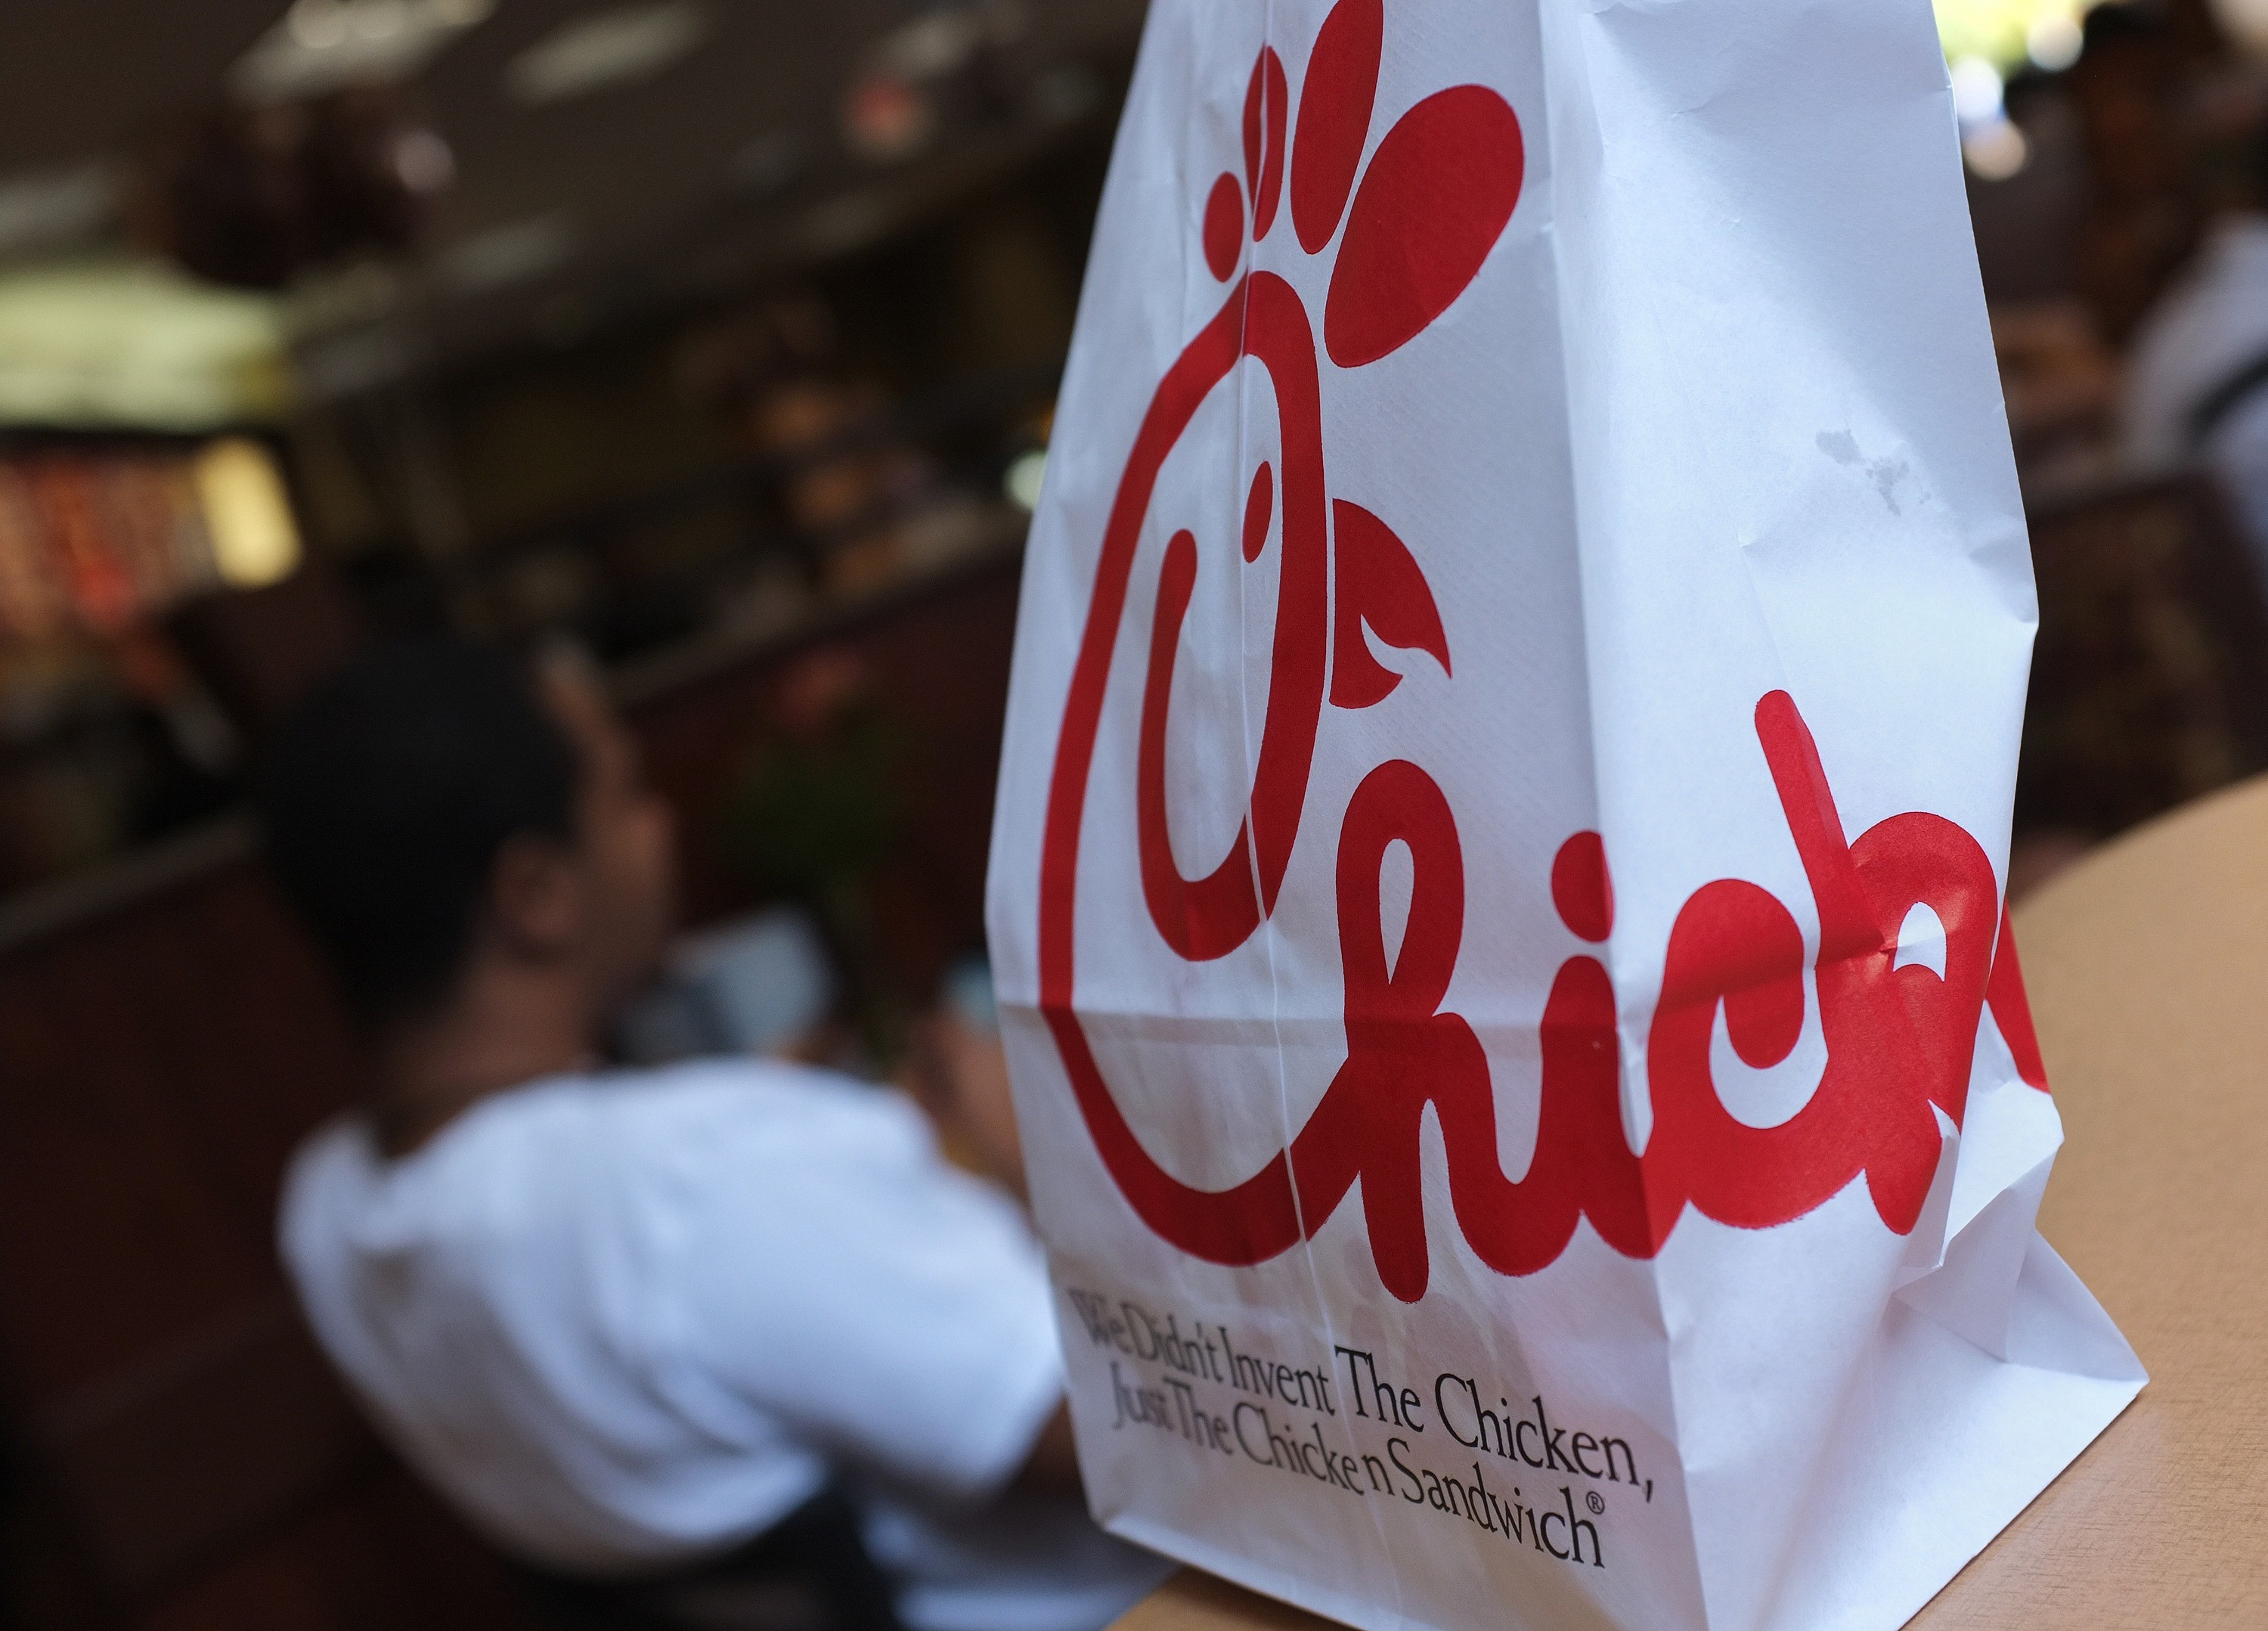 A Chick-fil-A logo is seen on a take out bag